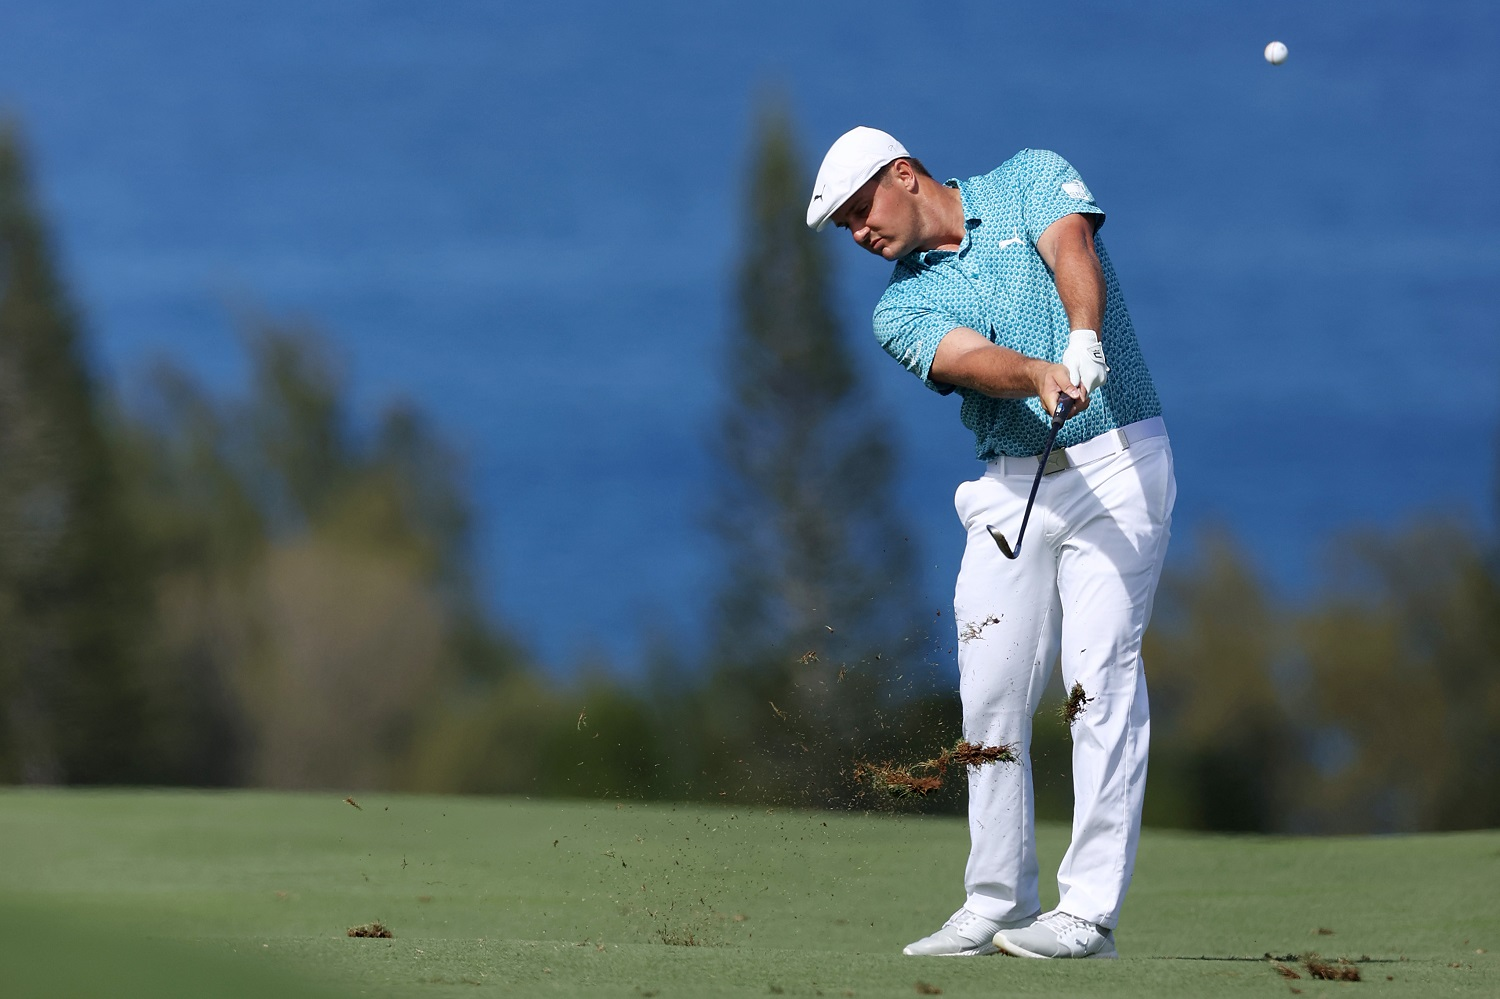 Bryson DeChambeau Nearly Blacked Out After Hitting Too Many Bombs